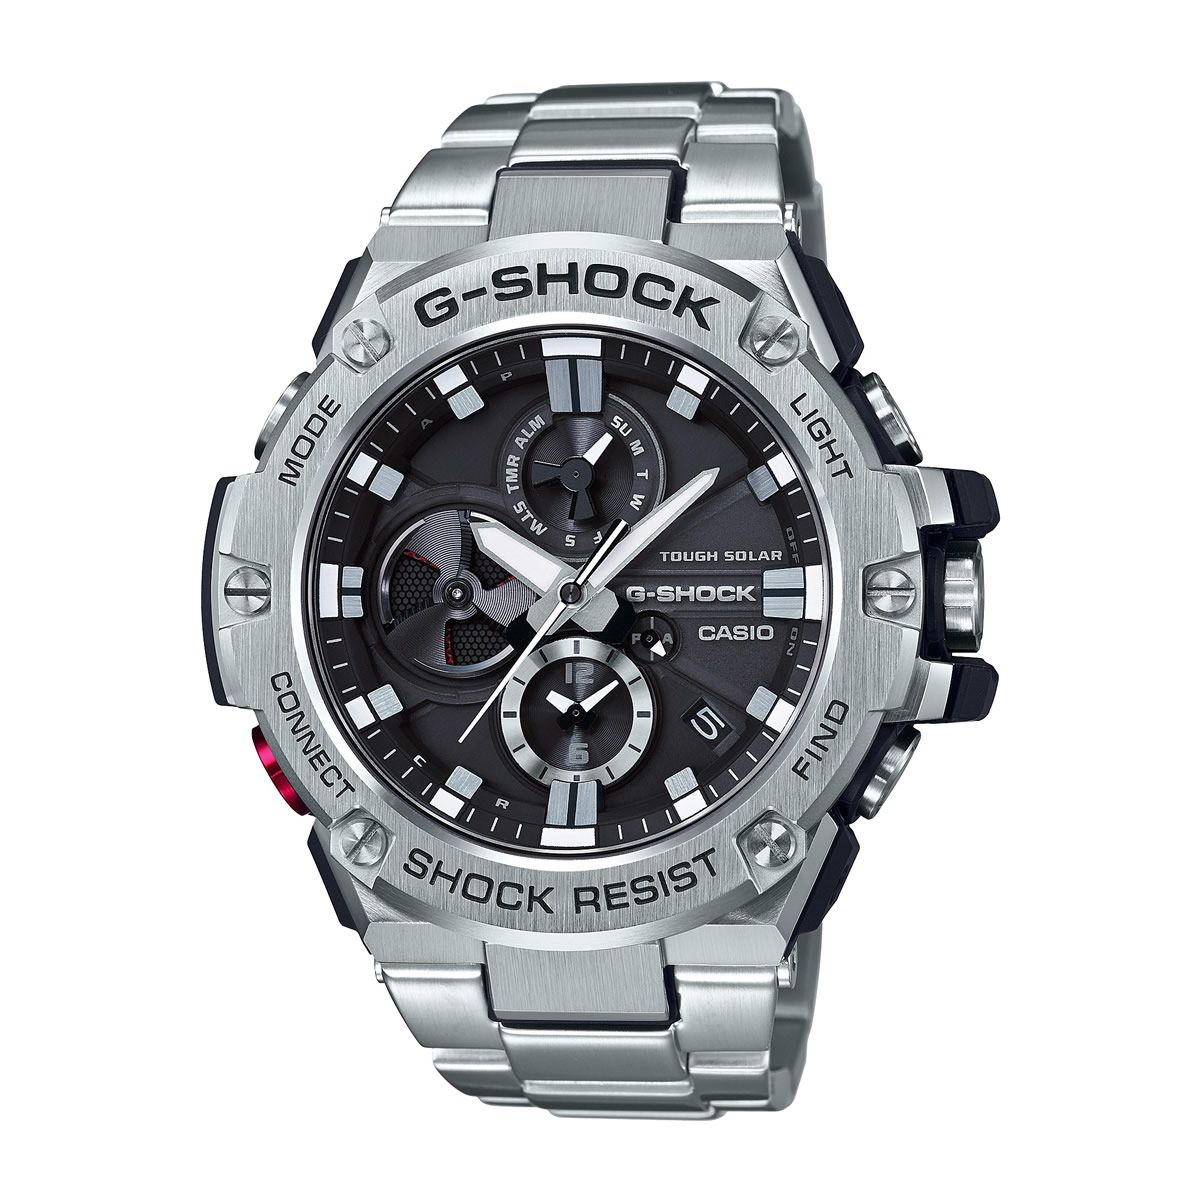 c40958c73fbb G-Shock Watches - Macy s